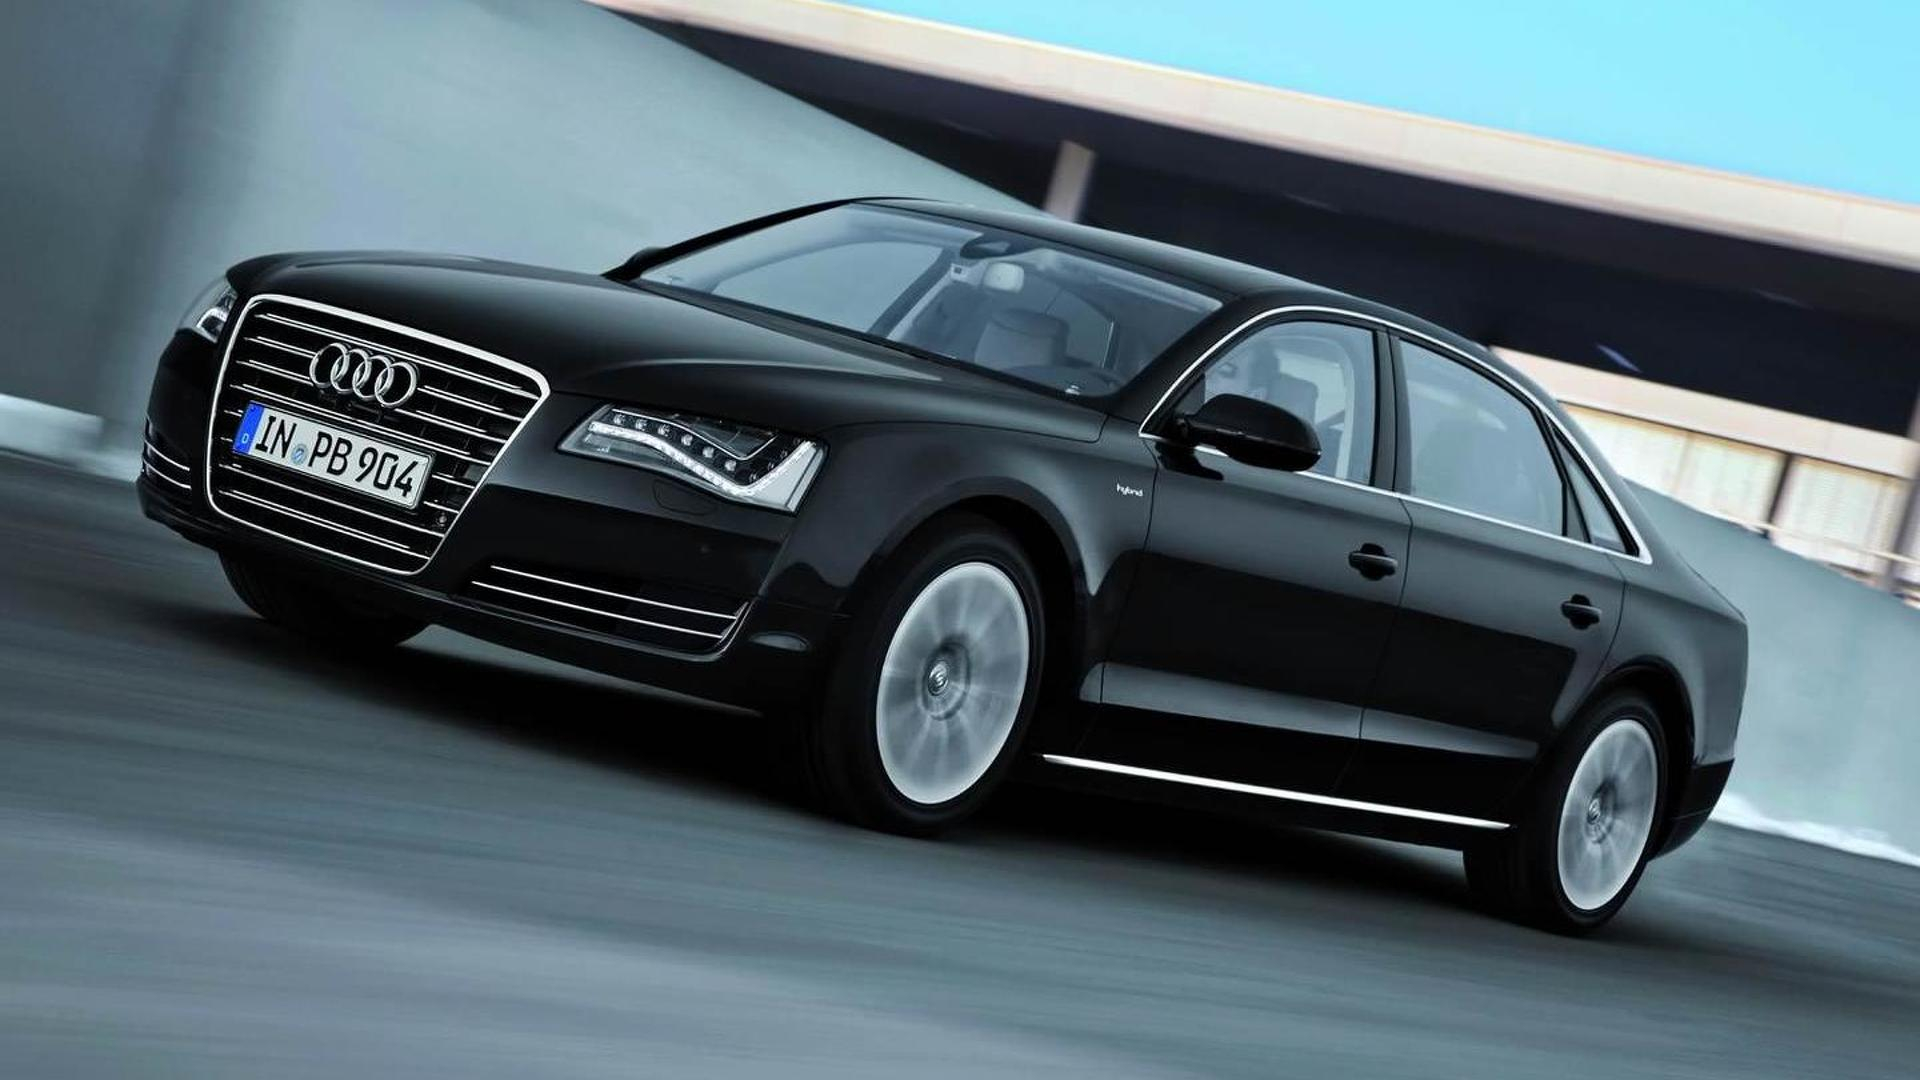 Next gen Audi A8 To Get RWD And aluminum Hybrid Body